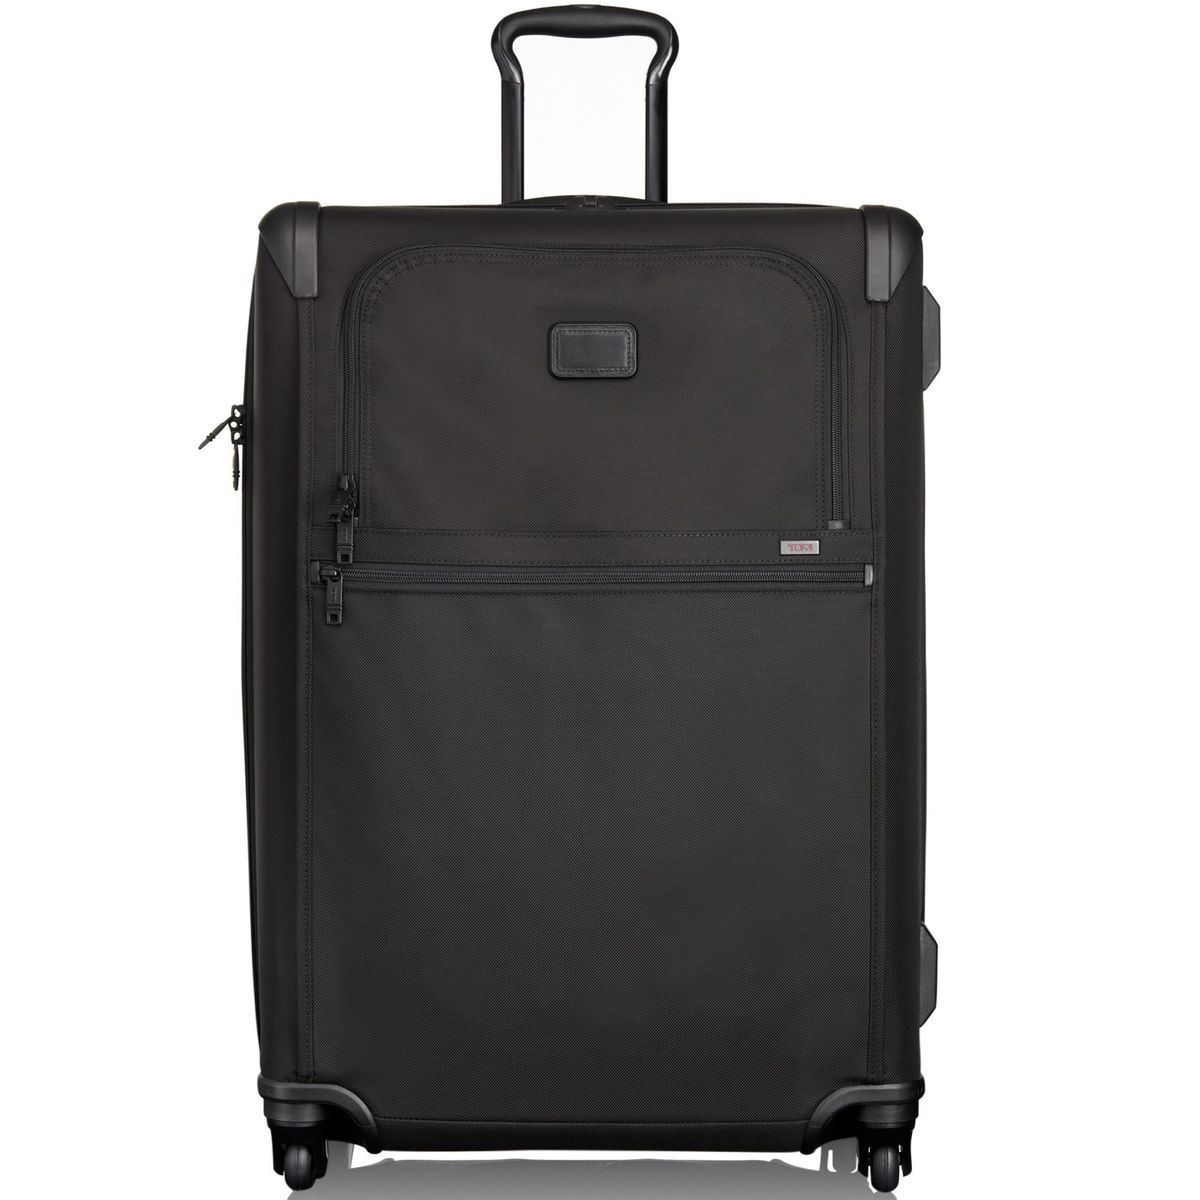 Tumi Alpha 4-Rollen Trolley 73 cm, black2